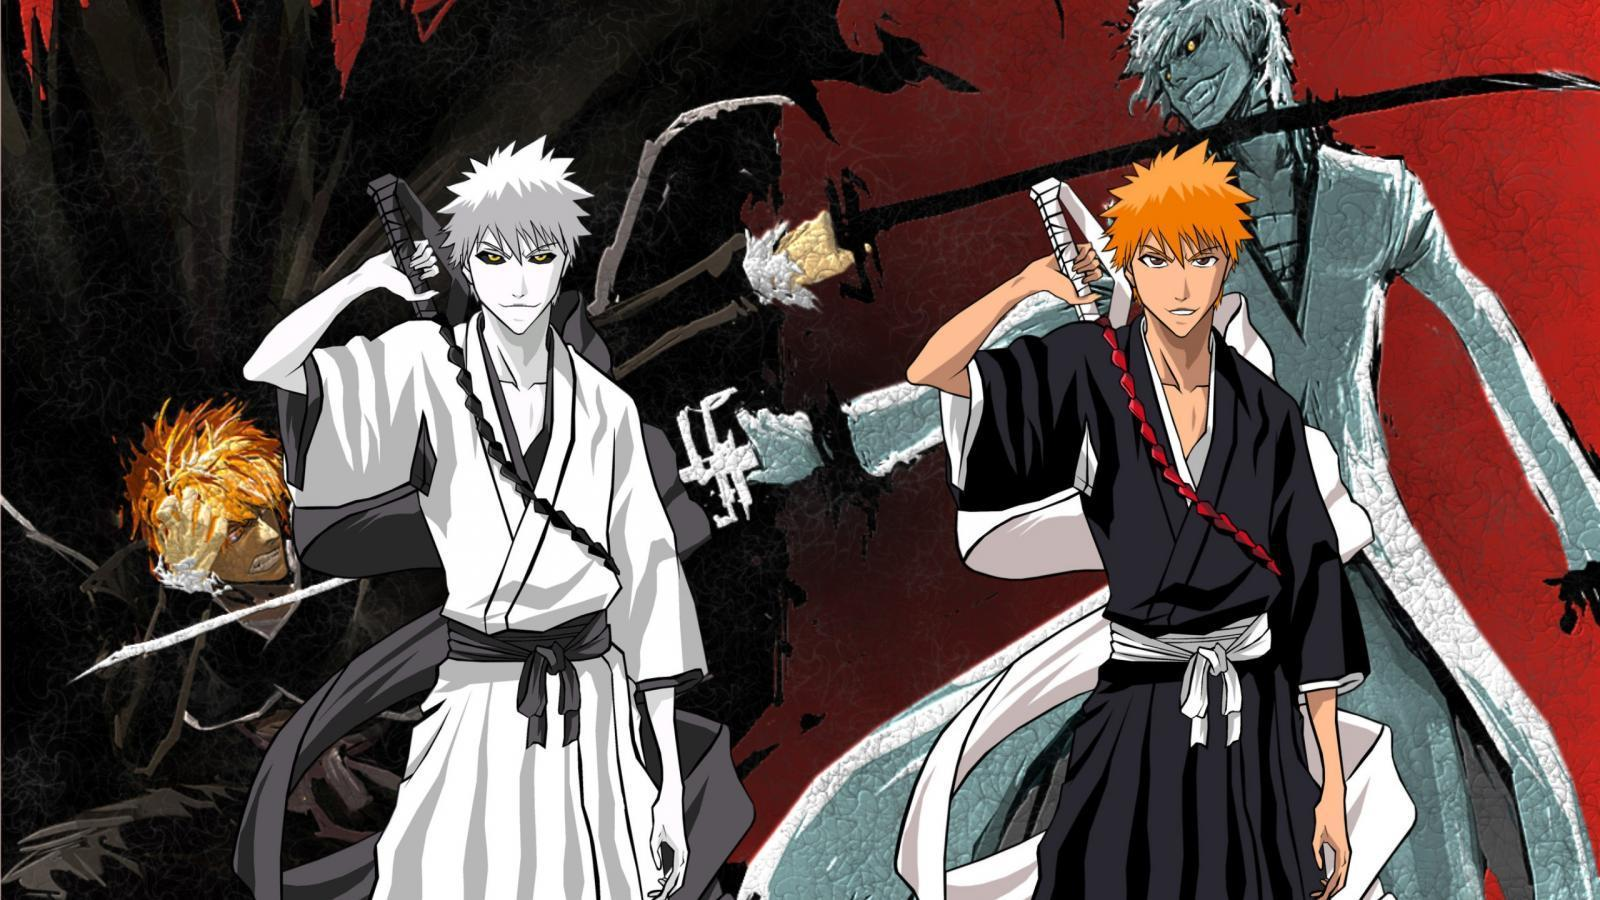 Download Hollow Ichigo Anime Bleach Form Free Wallpaper 1600x900